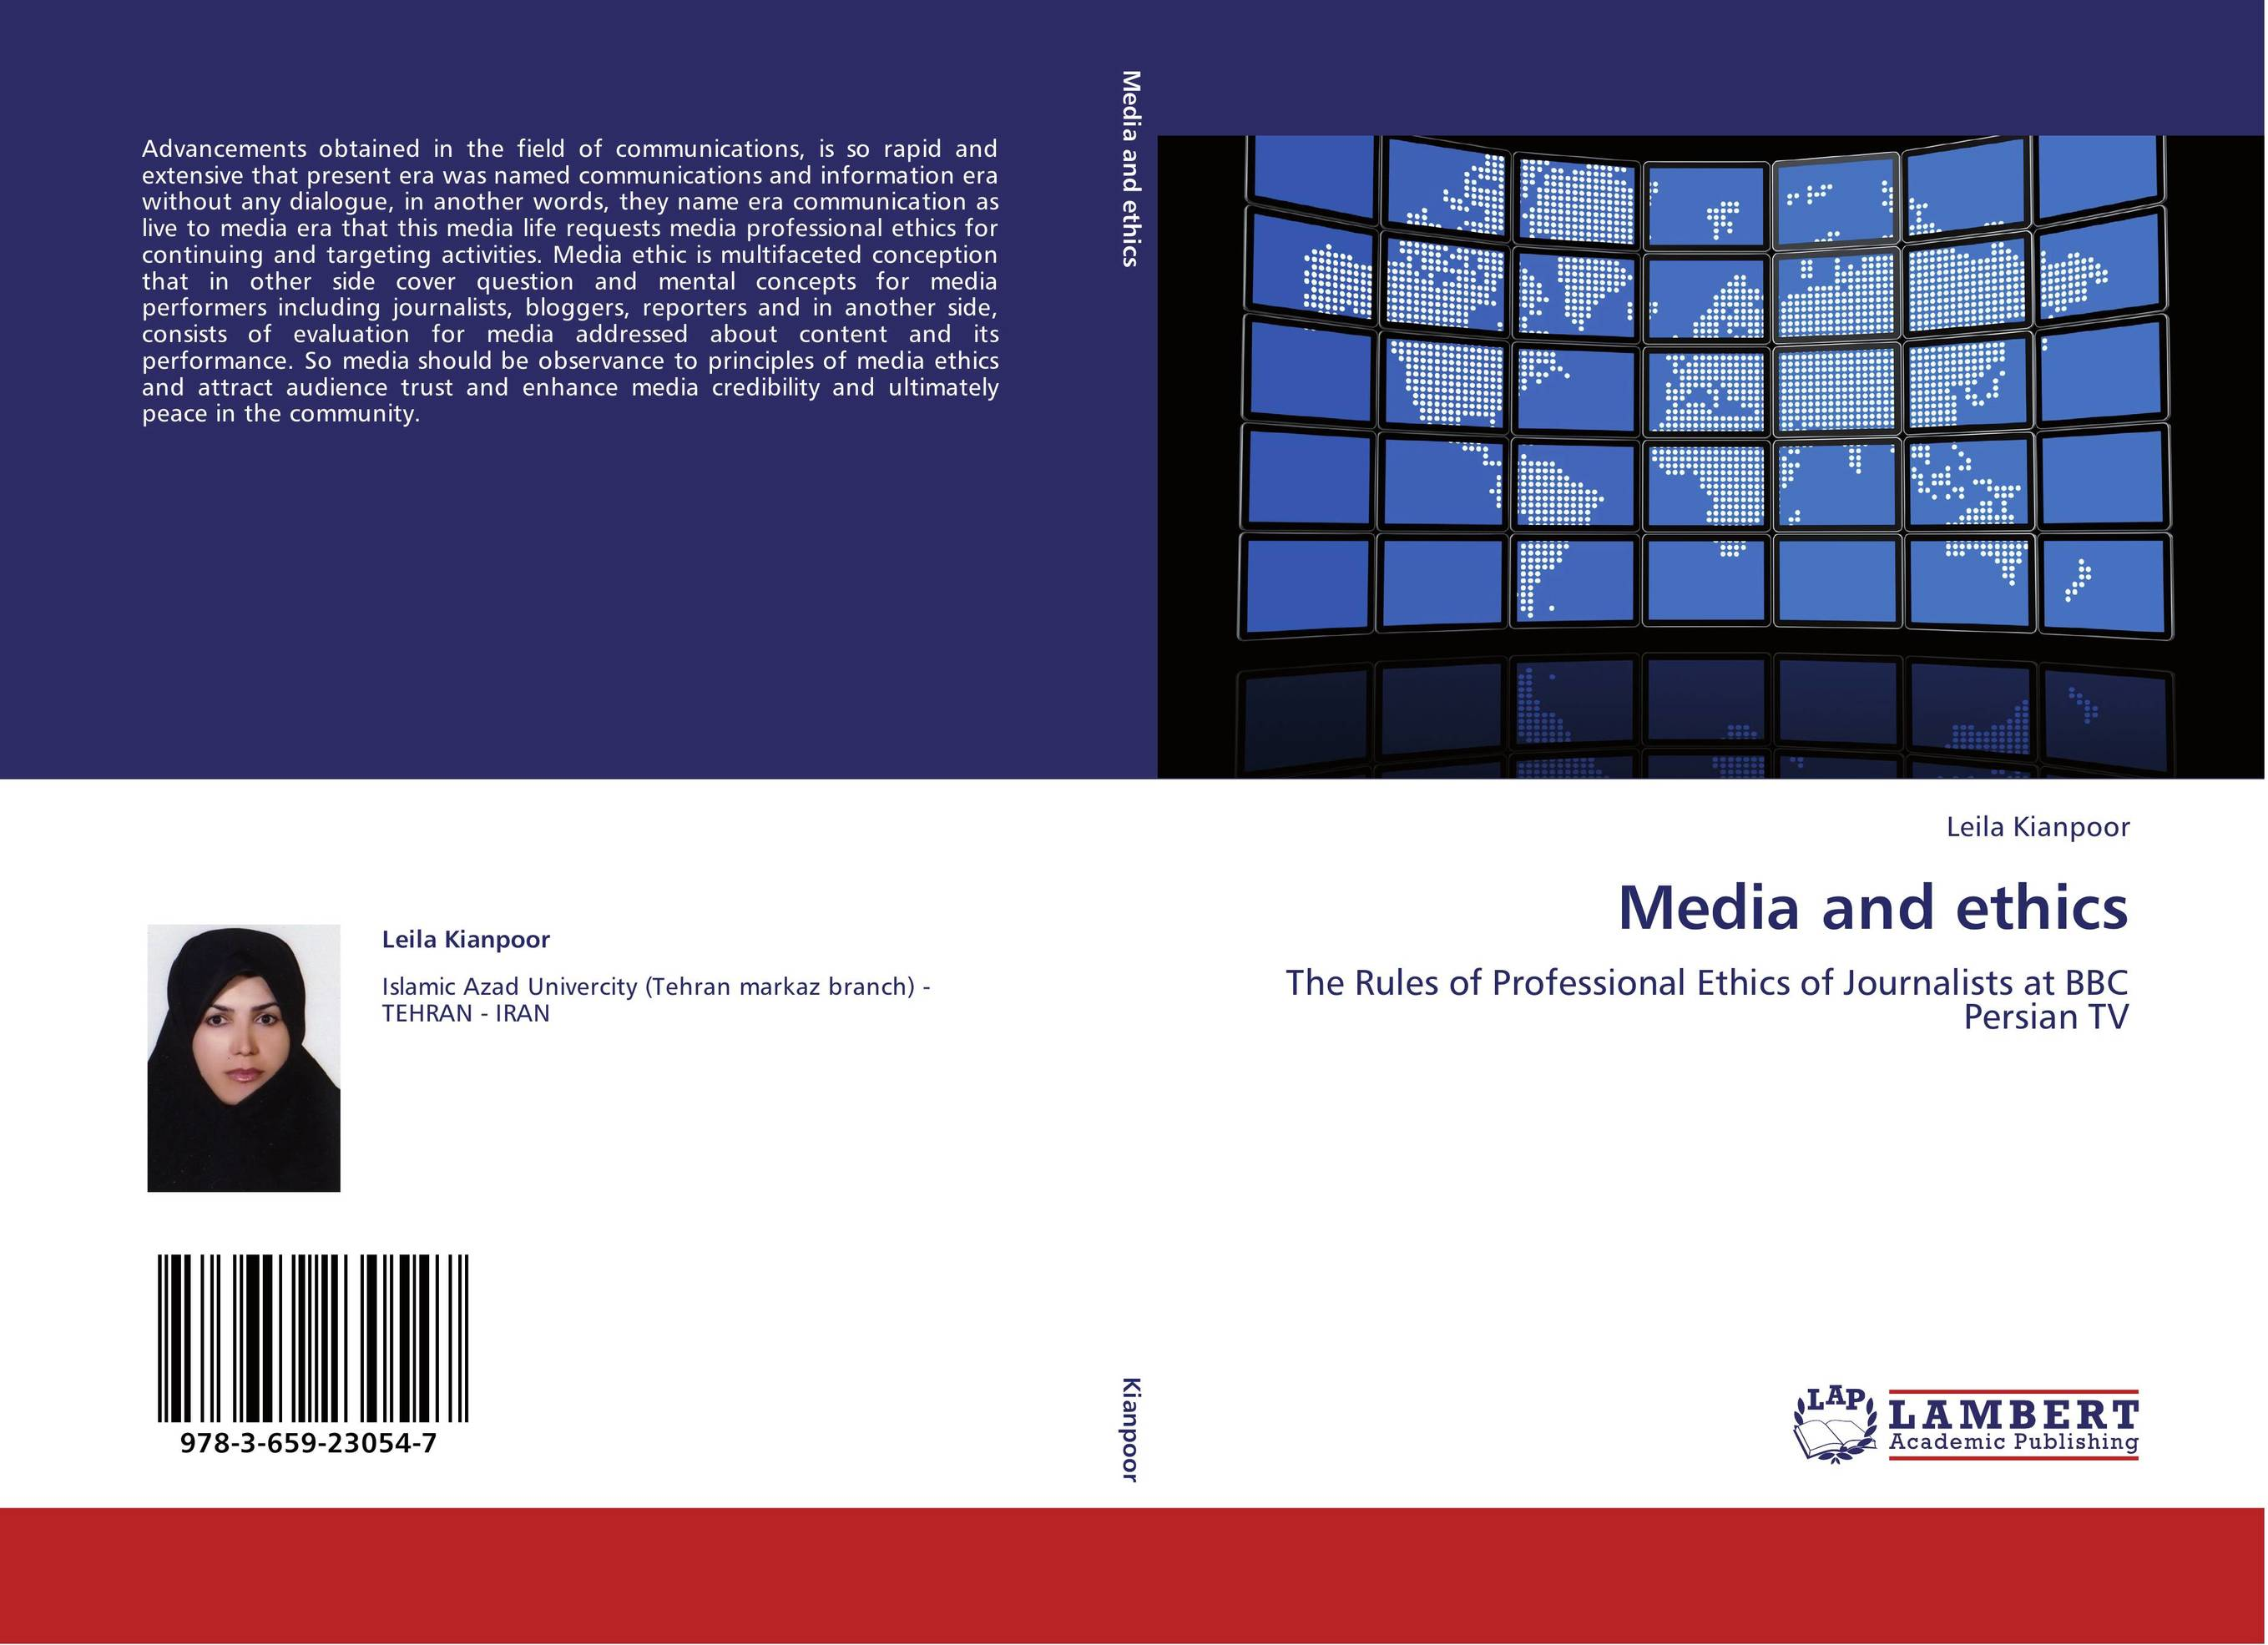 ethical media professionals Journalism ethics and standards comprise principles of ethics and of good practice as applicable to the specific challenges, this subset of media ethics is widely known to journalists as their professional code of ethics or the canons of journalism.